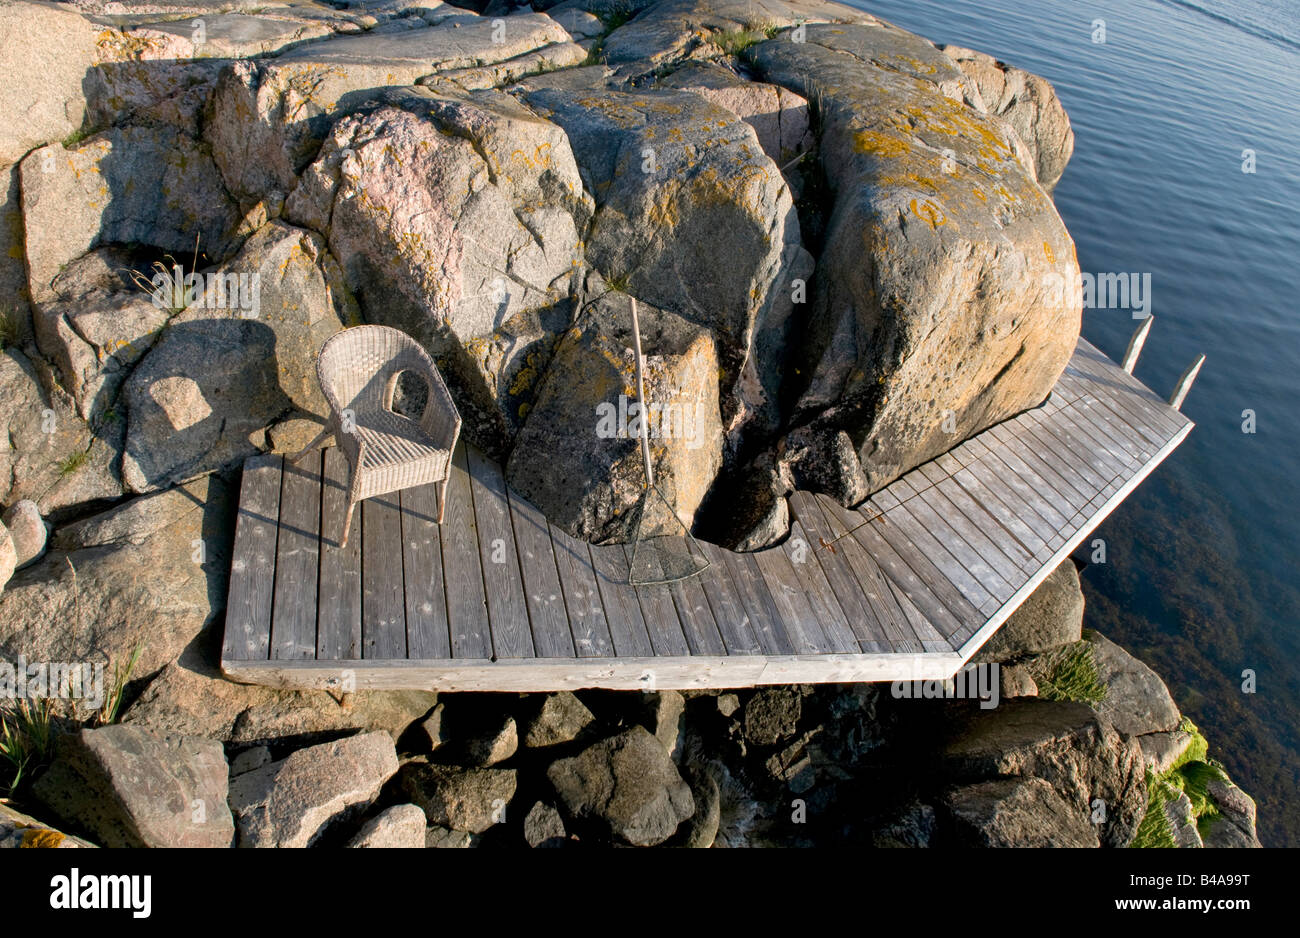 Jetty among rocks in the Stockholm archipelago - Stock Image